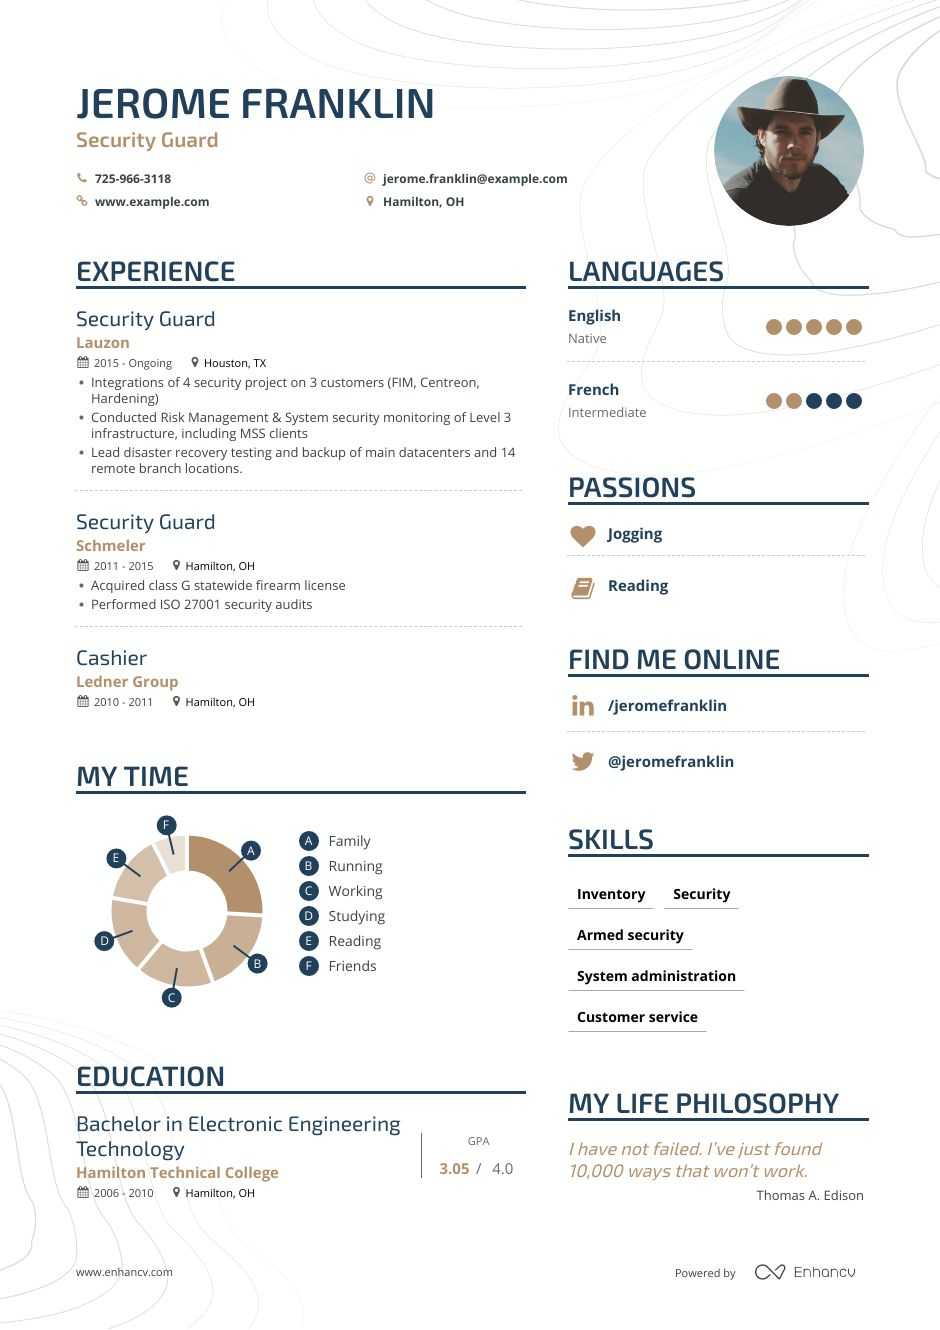 security guard resume samples and writing guide for enhancv beginners mover fillable Resume Security Guard Resume For Beginners